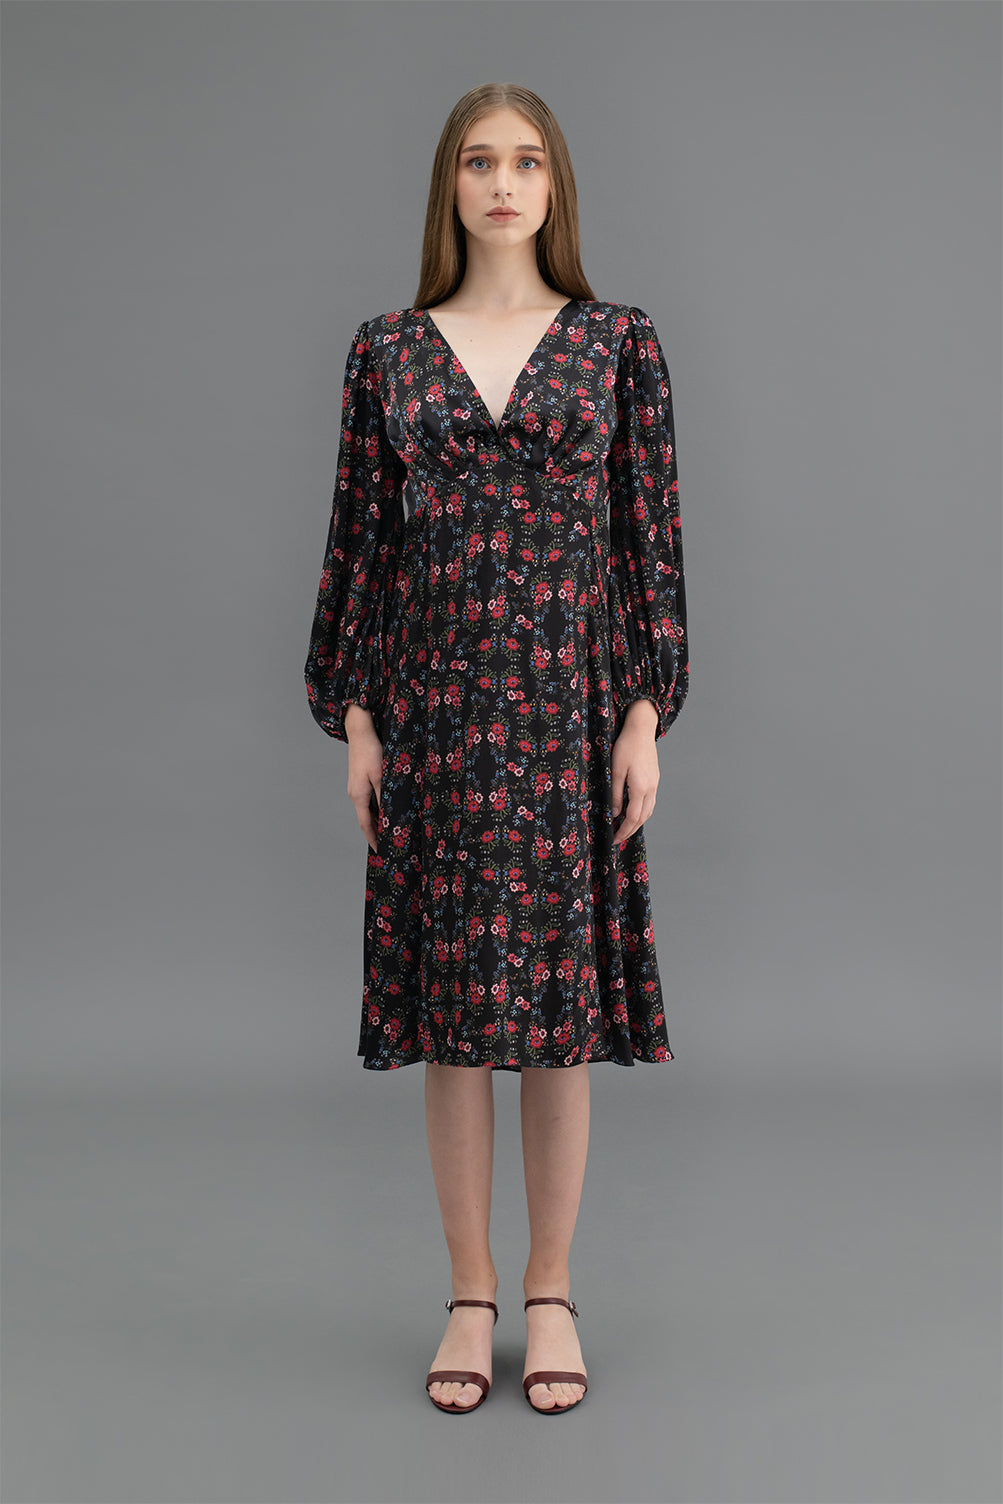 Adele Dress Flowers Black